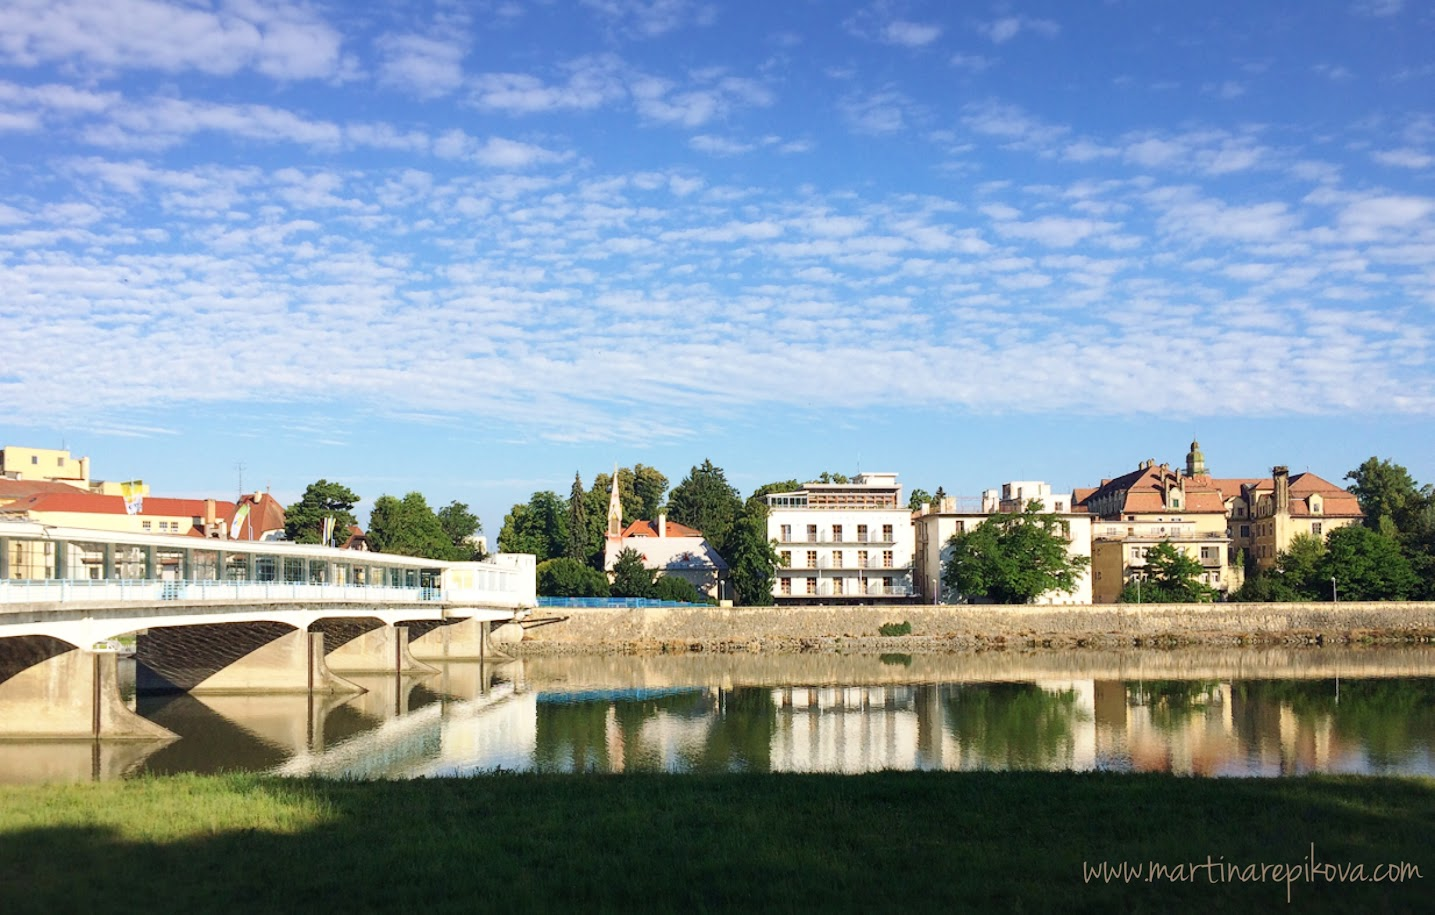 The Colonnade bridge and buildings on the right bank of the river Váh, Piešťany, Slovakia